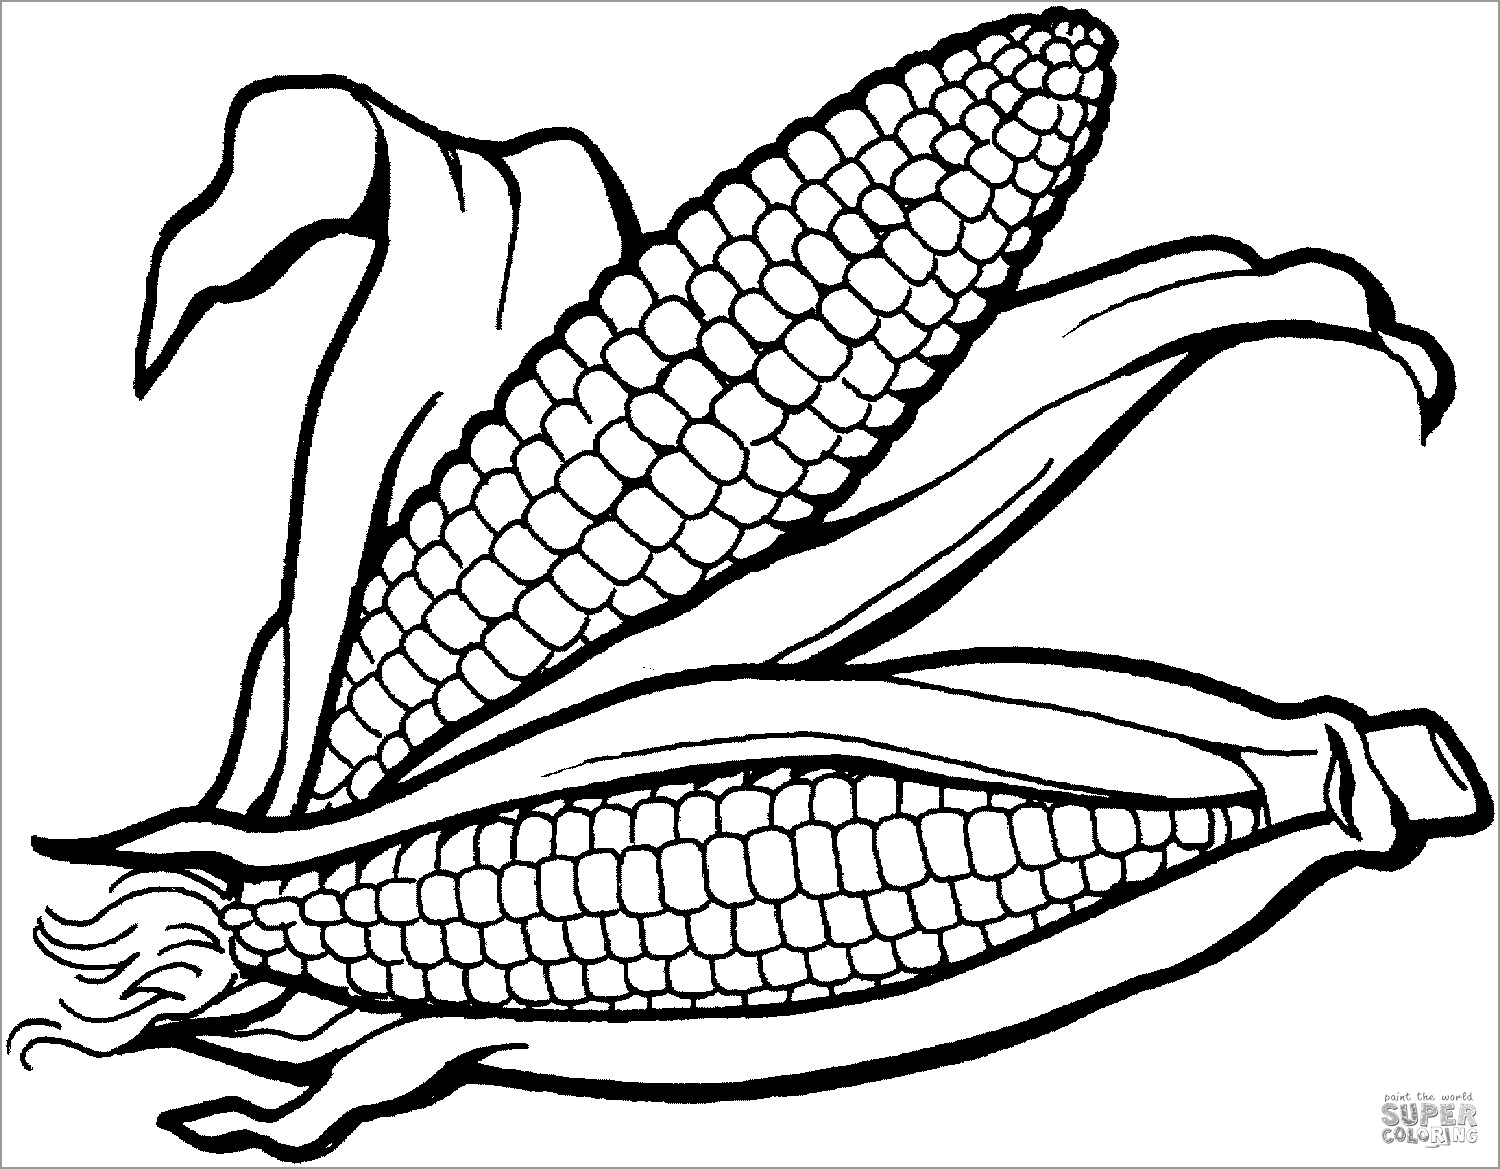 Printable Maize Coloring Page for Kids